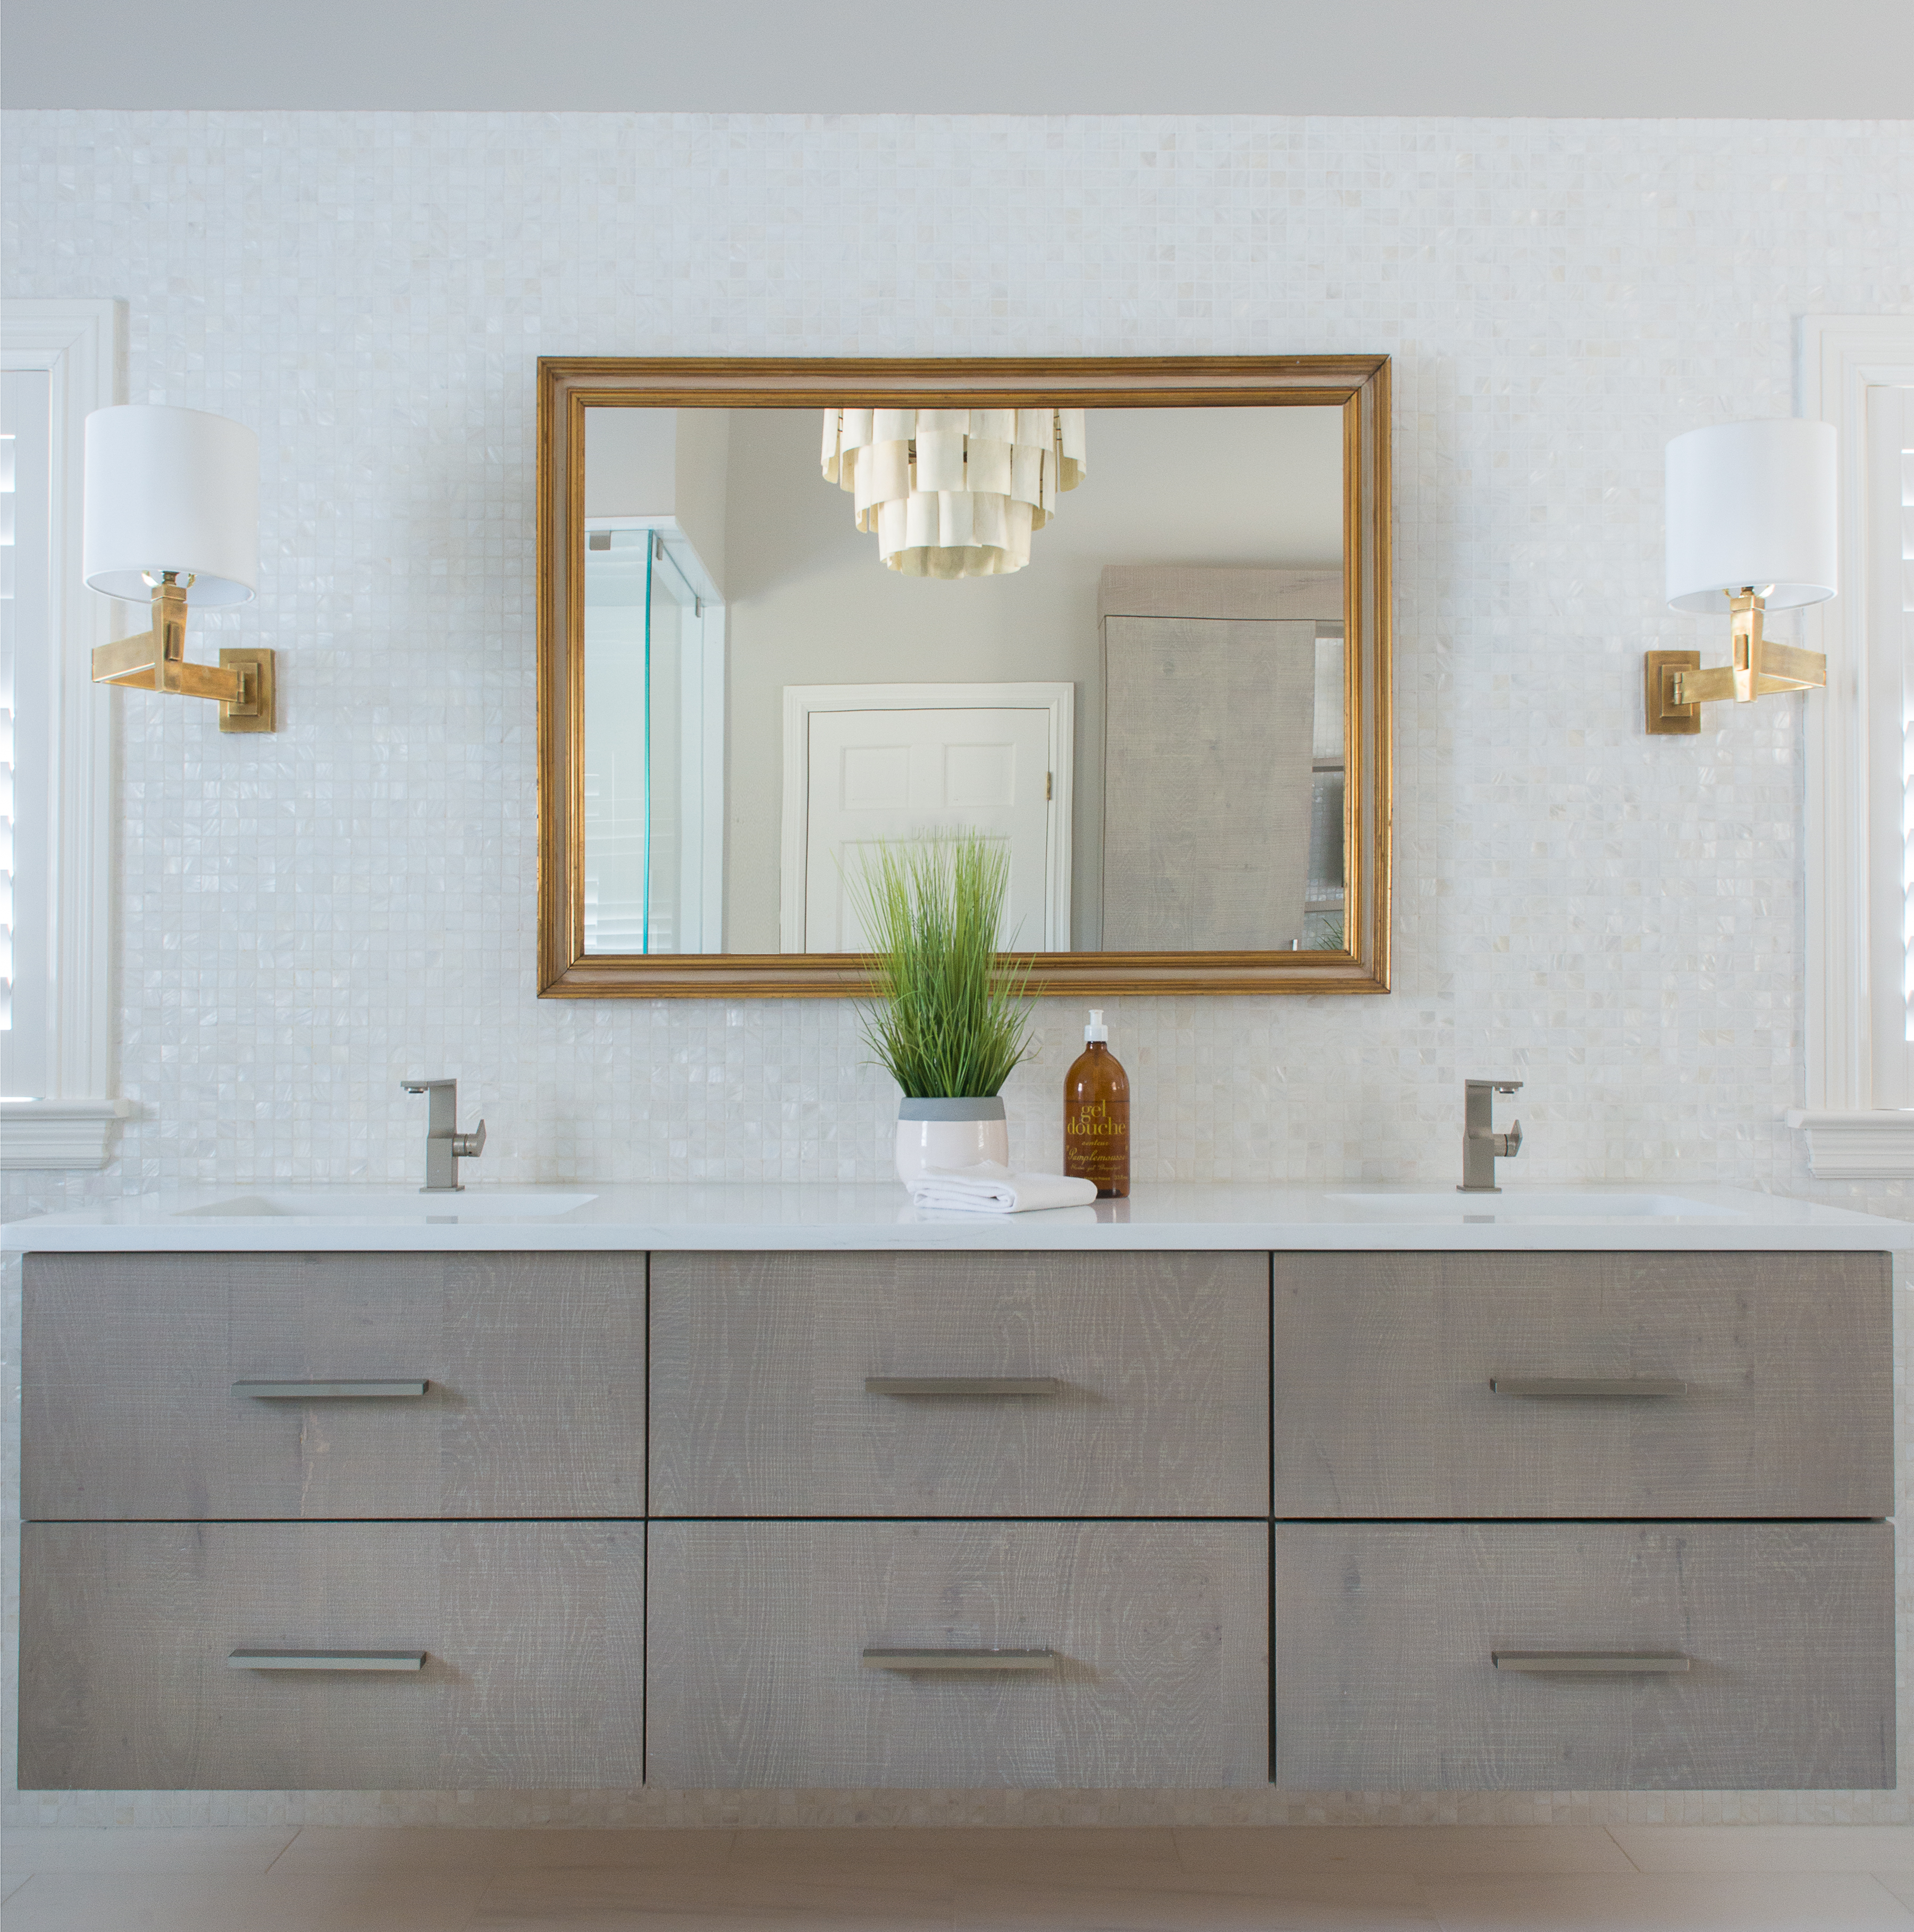 Spencer Cox Interiors Modern Bathroom Interior Design New Canaan.jpeg